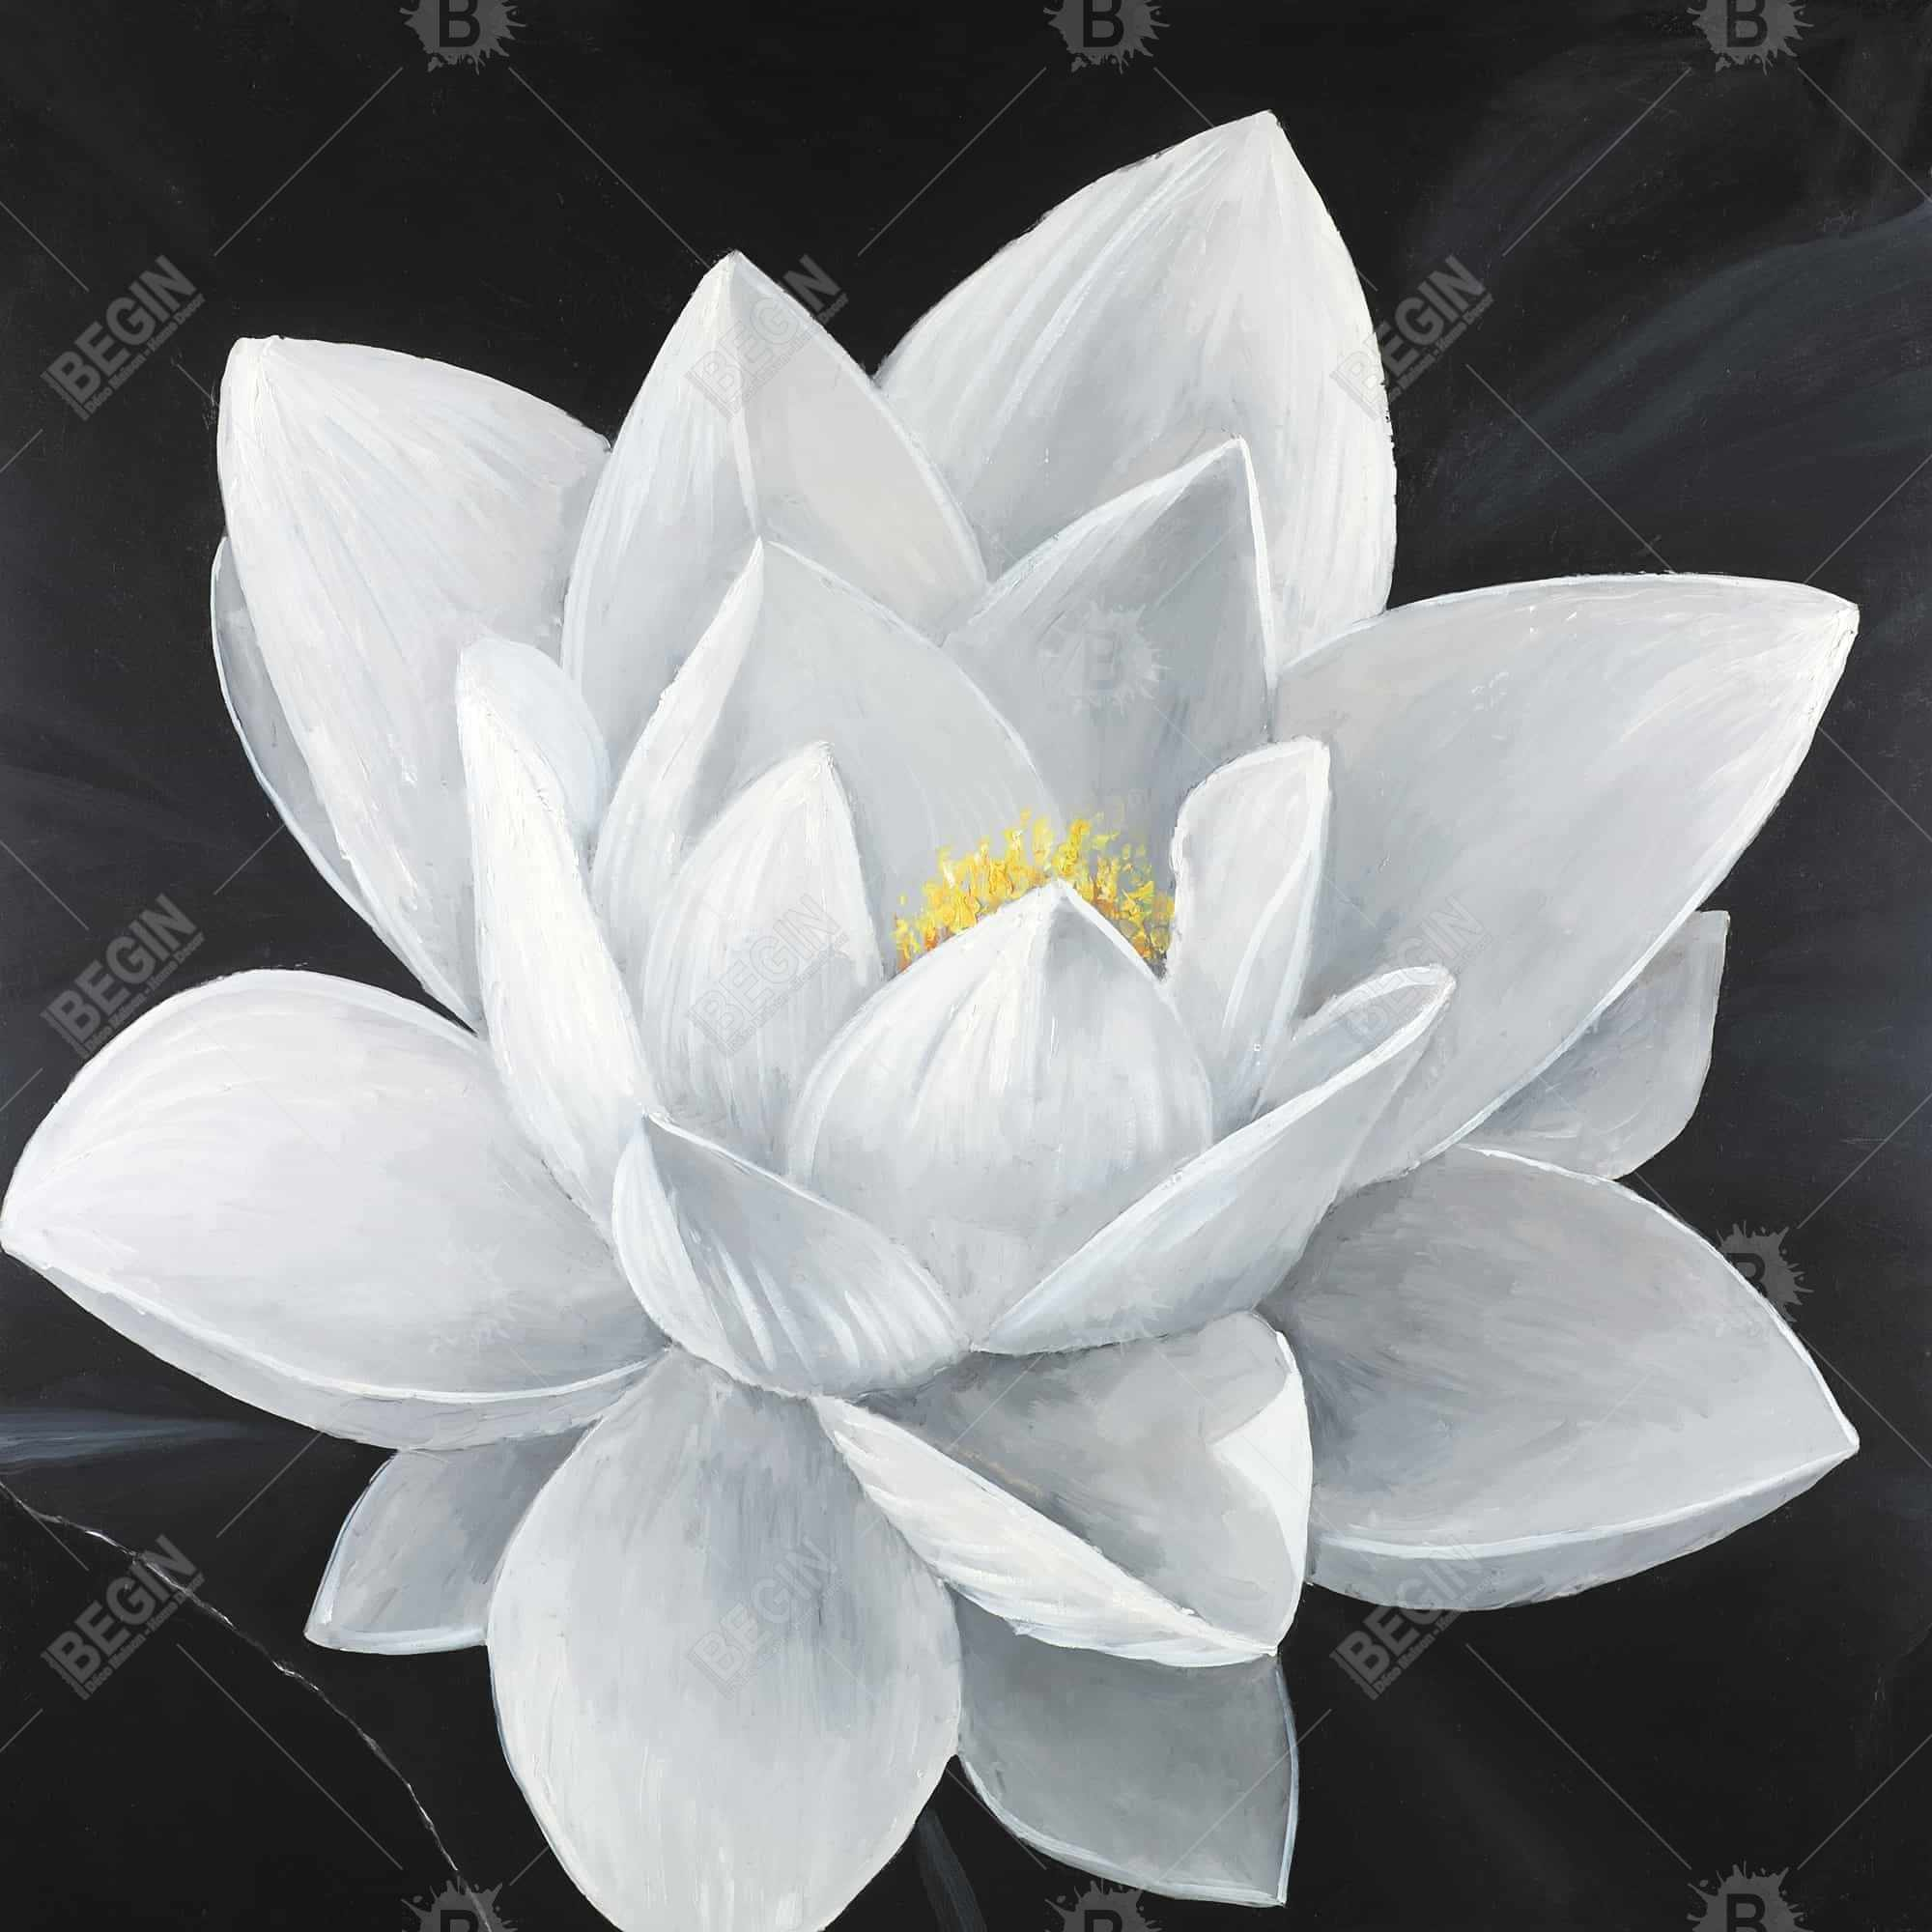 Overhead view of a lotus flower